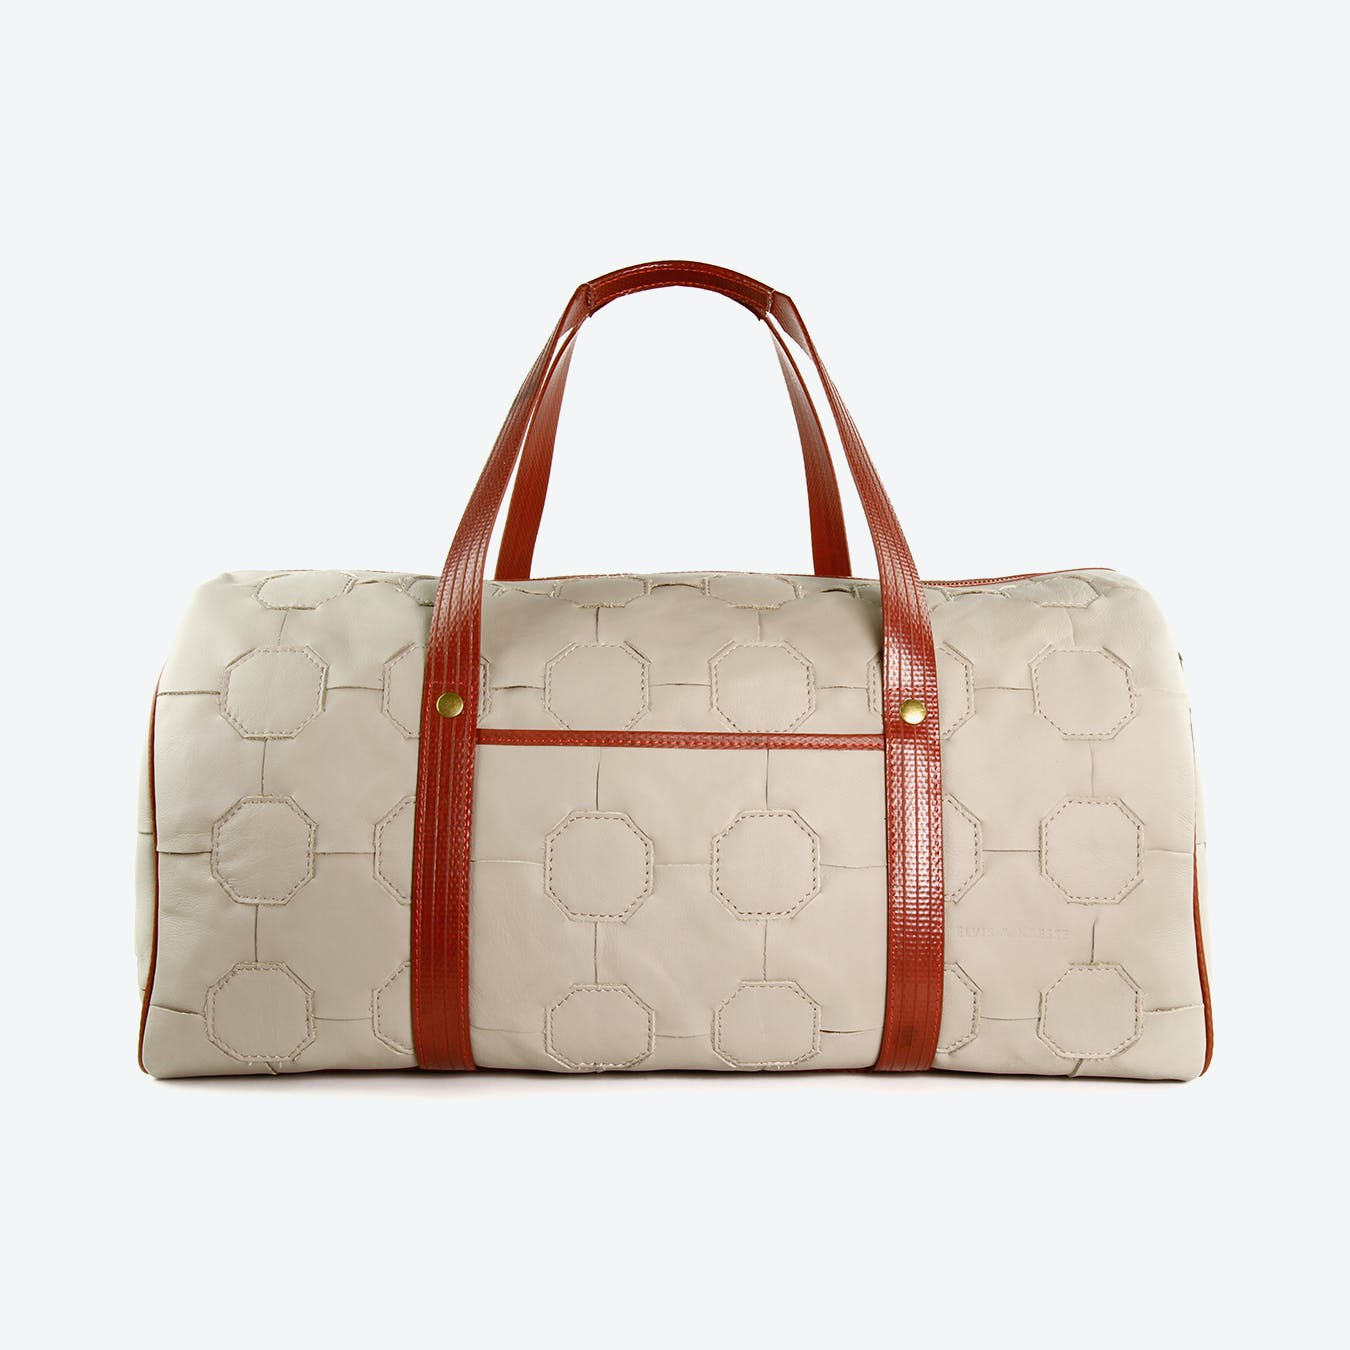 Fire & Hide Duffel Bag in Grey Burberry Leather & Red Fire-Hoses